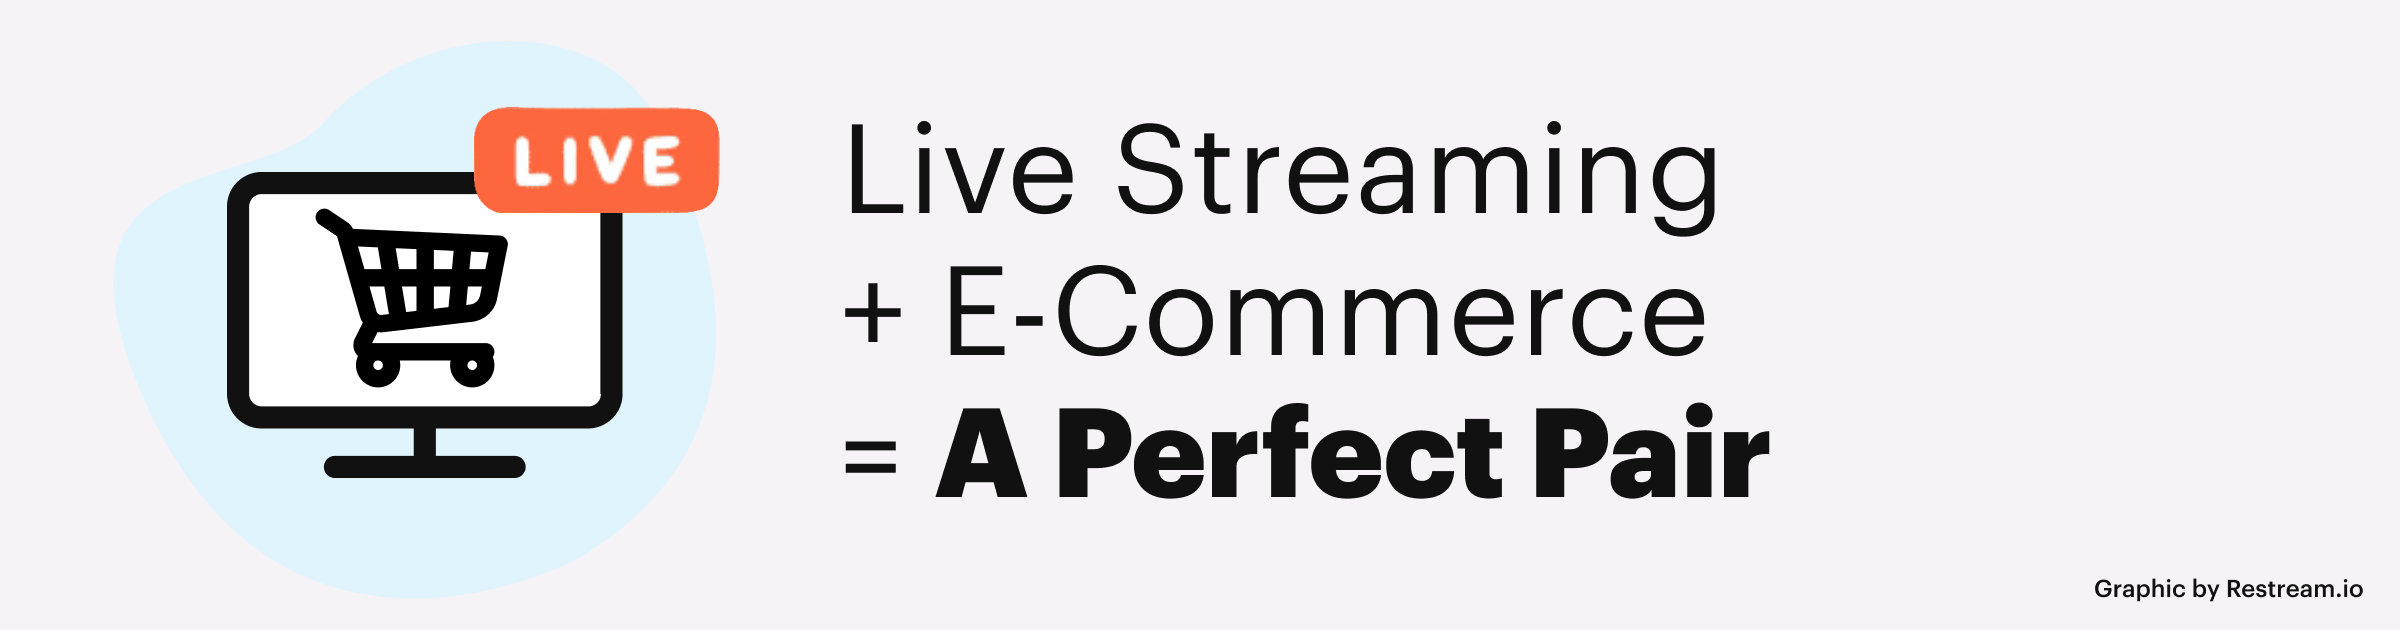 Live Streaming + E-Commerce = A Perfect Pair